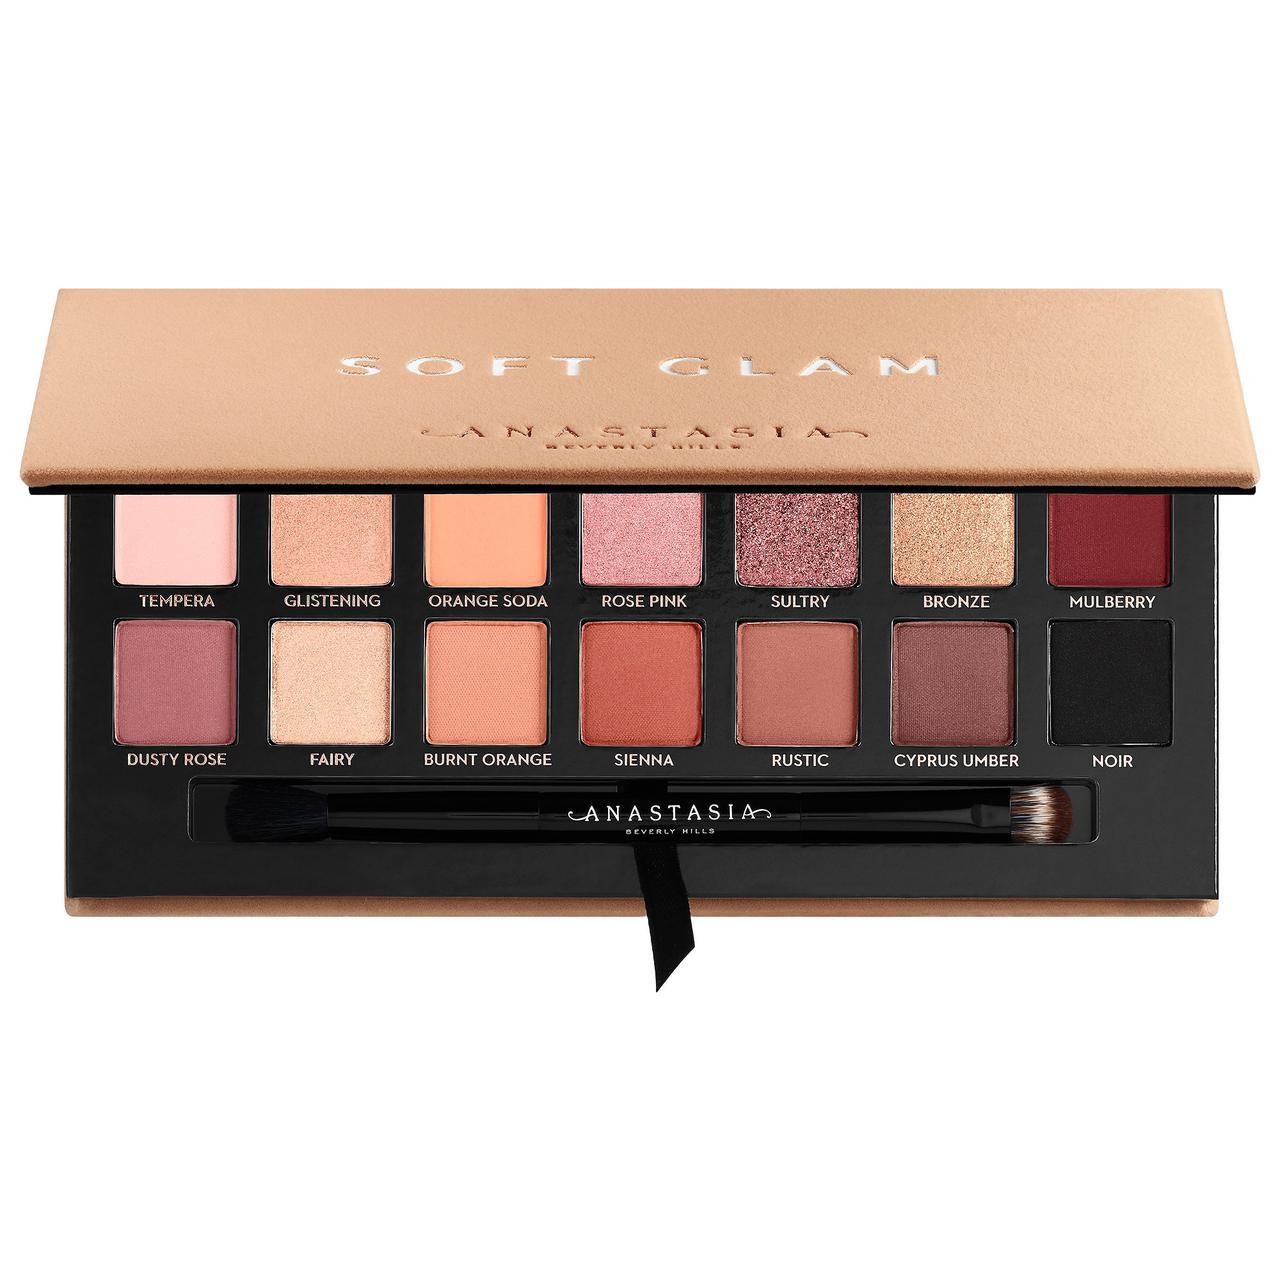 Палитра теней ANASTASIA BEVERLY HILLS Soft Glam